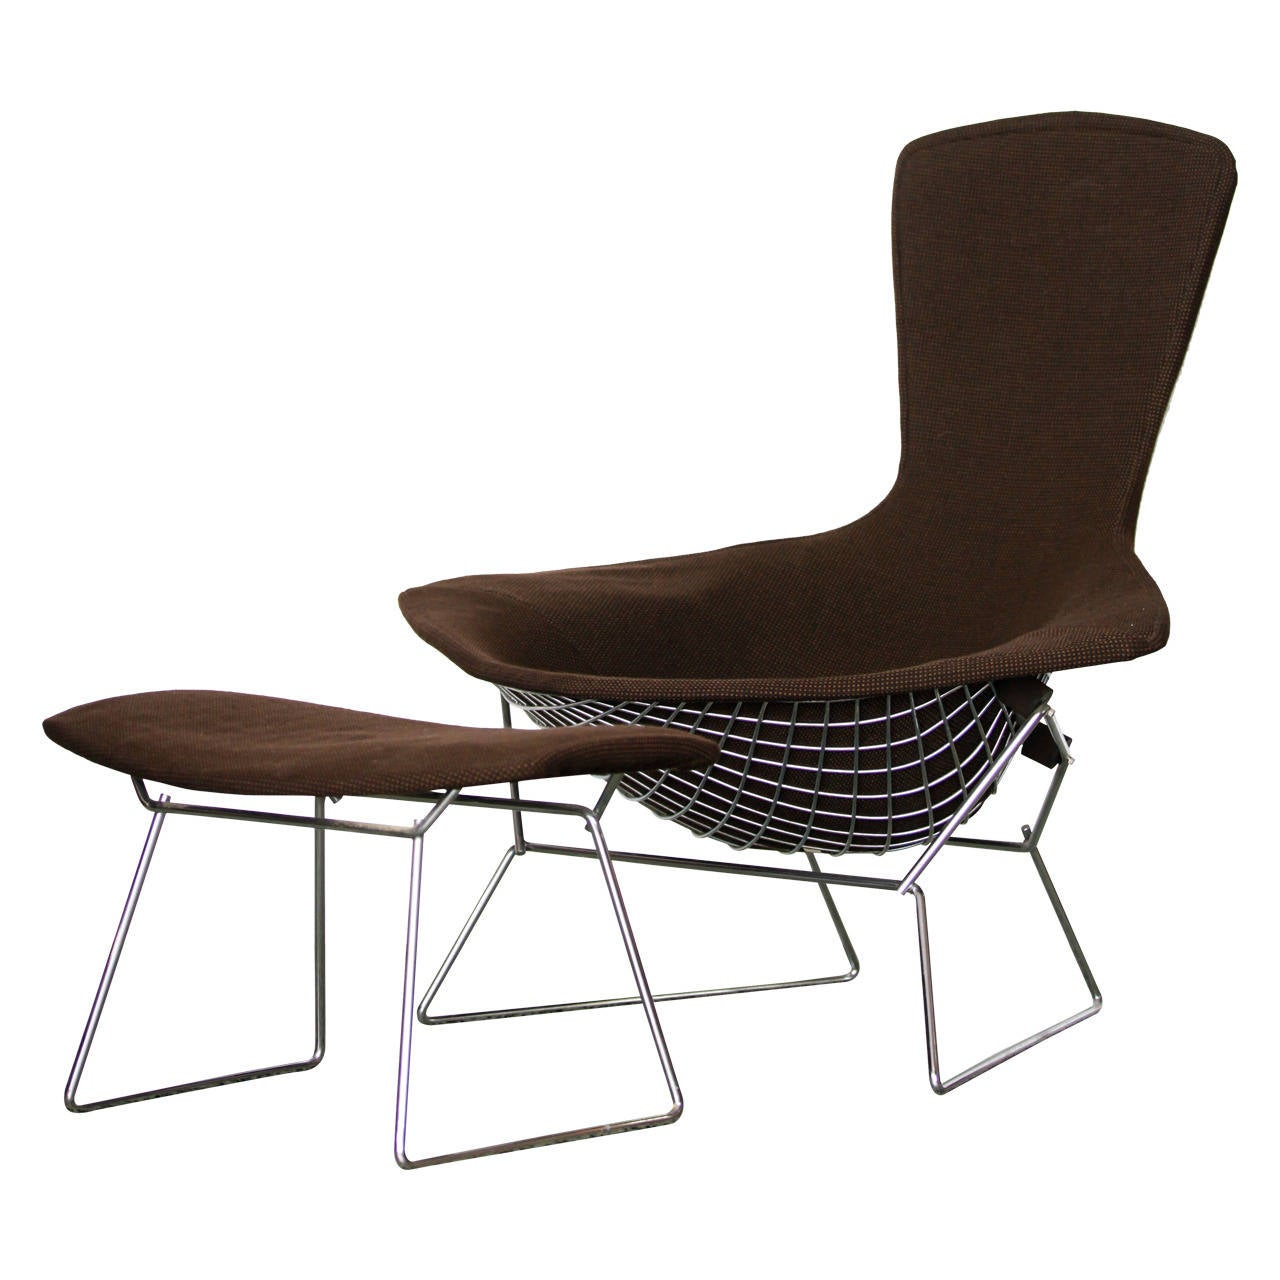 Bird Chair And Ottoman By Harry Bertoia For Knoll At 1stdibs